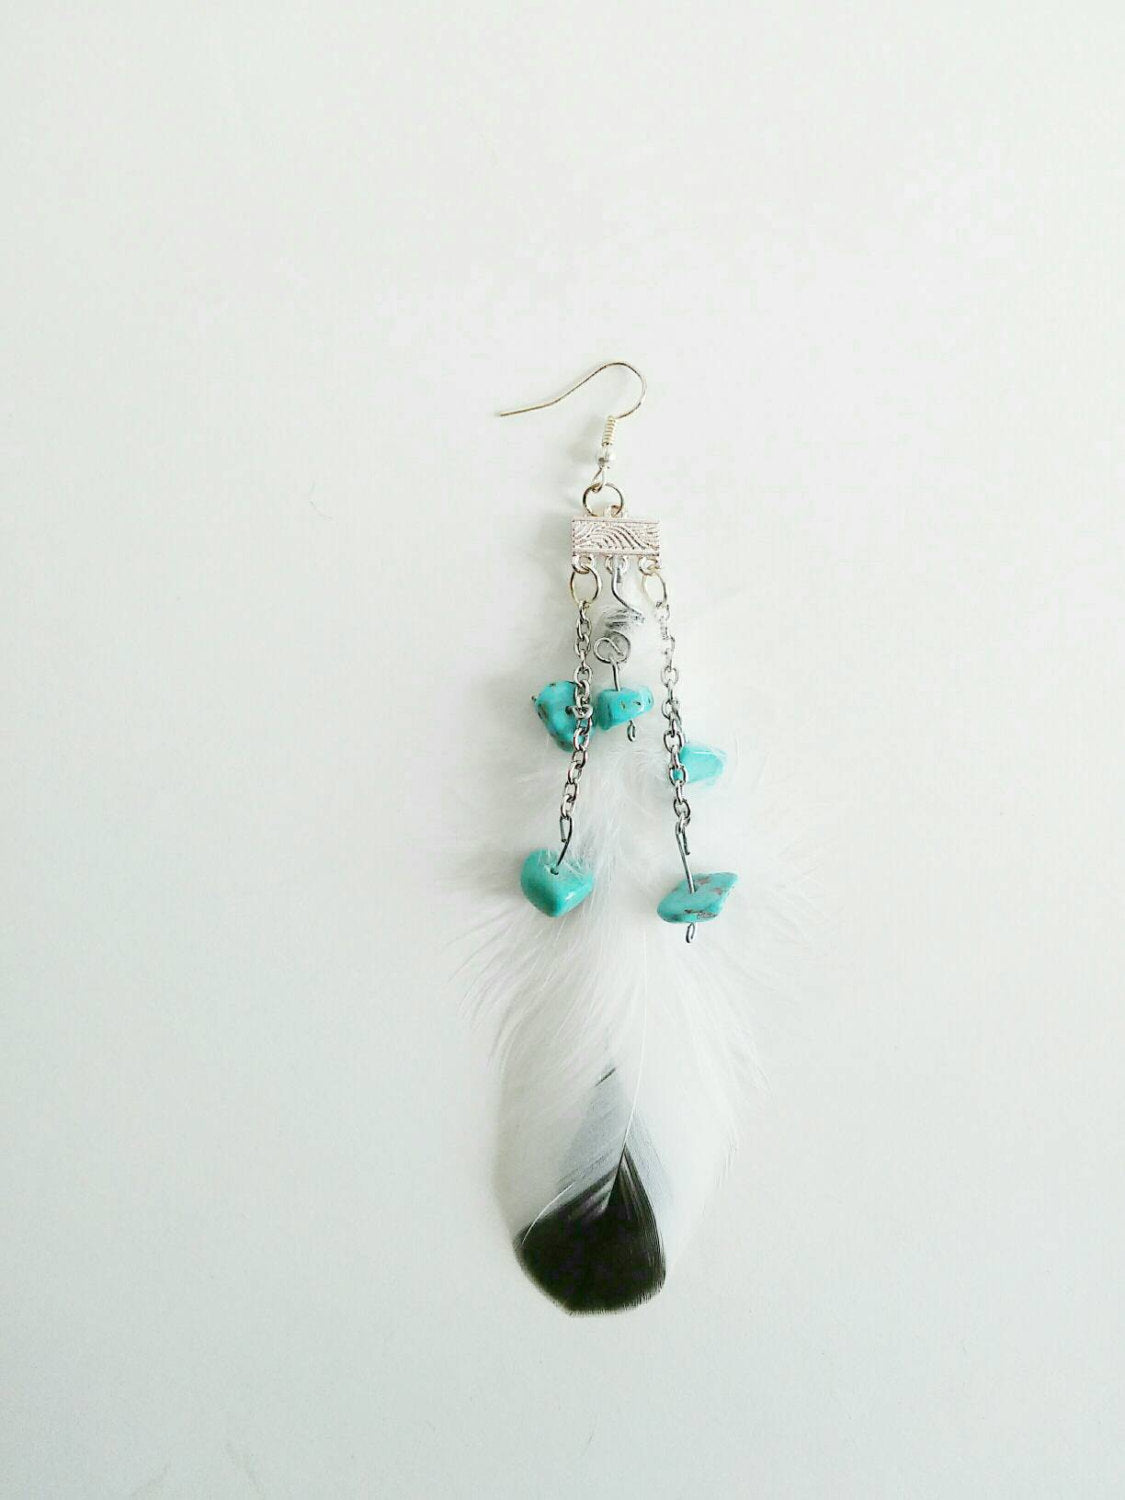 Single white boho feather earring/feather earring/boho earring/bohemian/single earring/blue turquoise stone earring/white feather earring